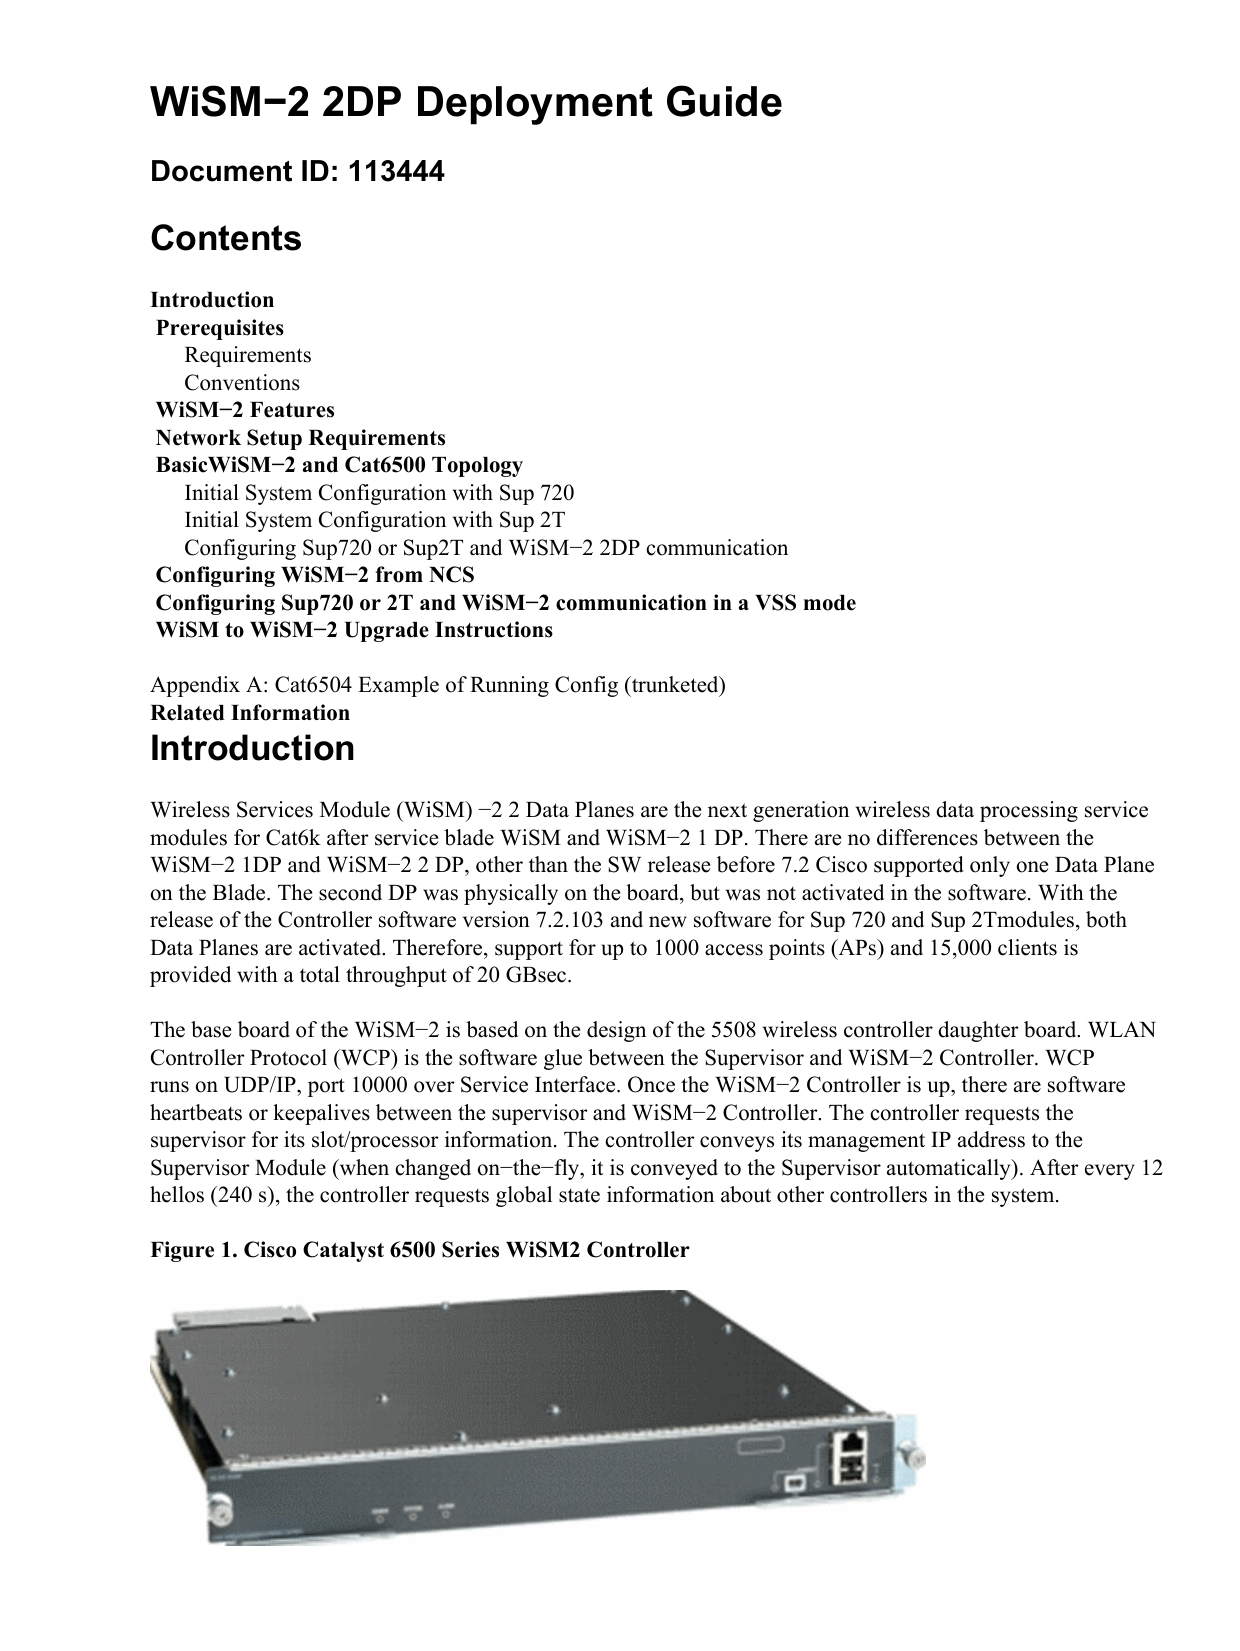 WiSM−2 2DP Deployment Guide Contents Document ID: 113444